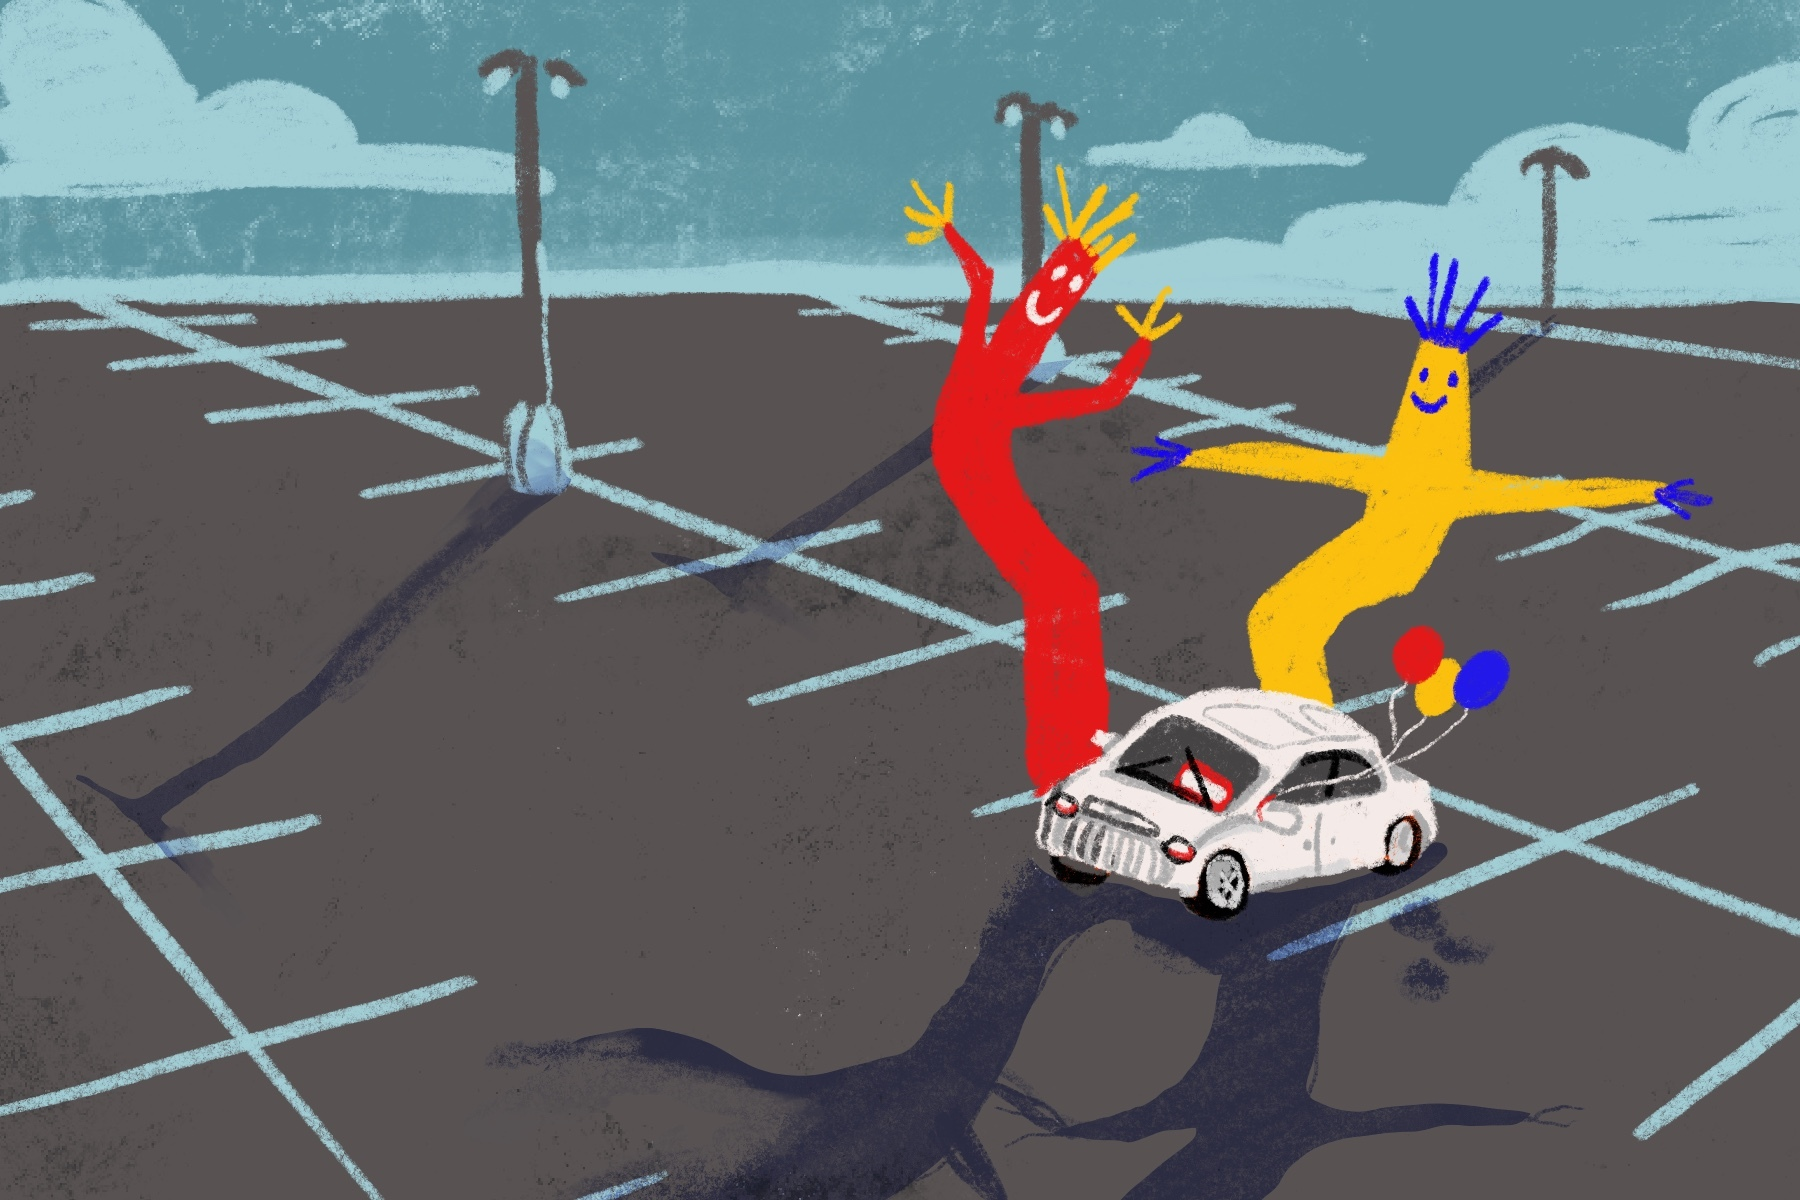 Illustration of car dealership with one car in lot next to inflatable person